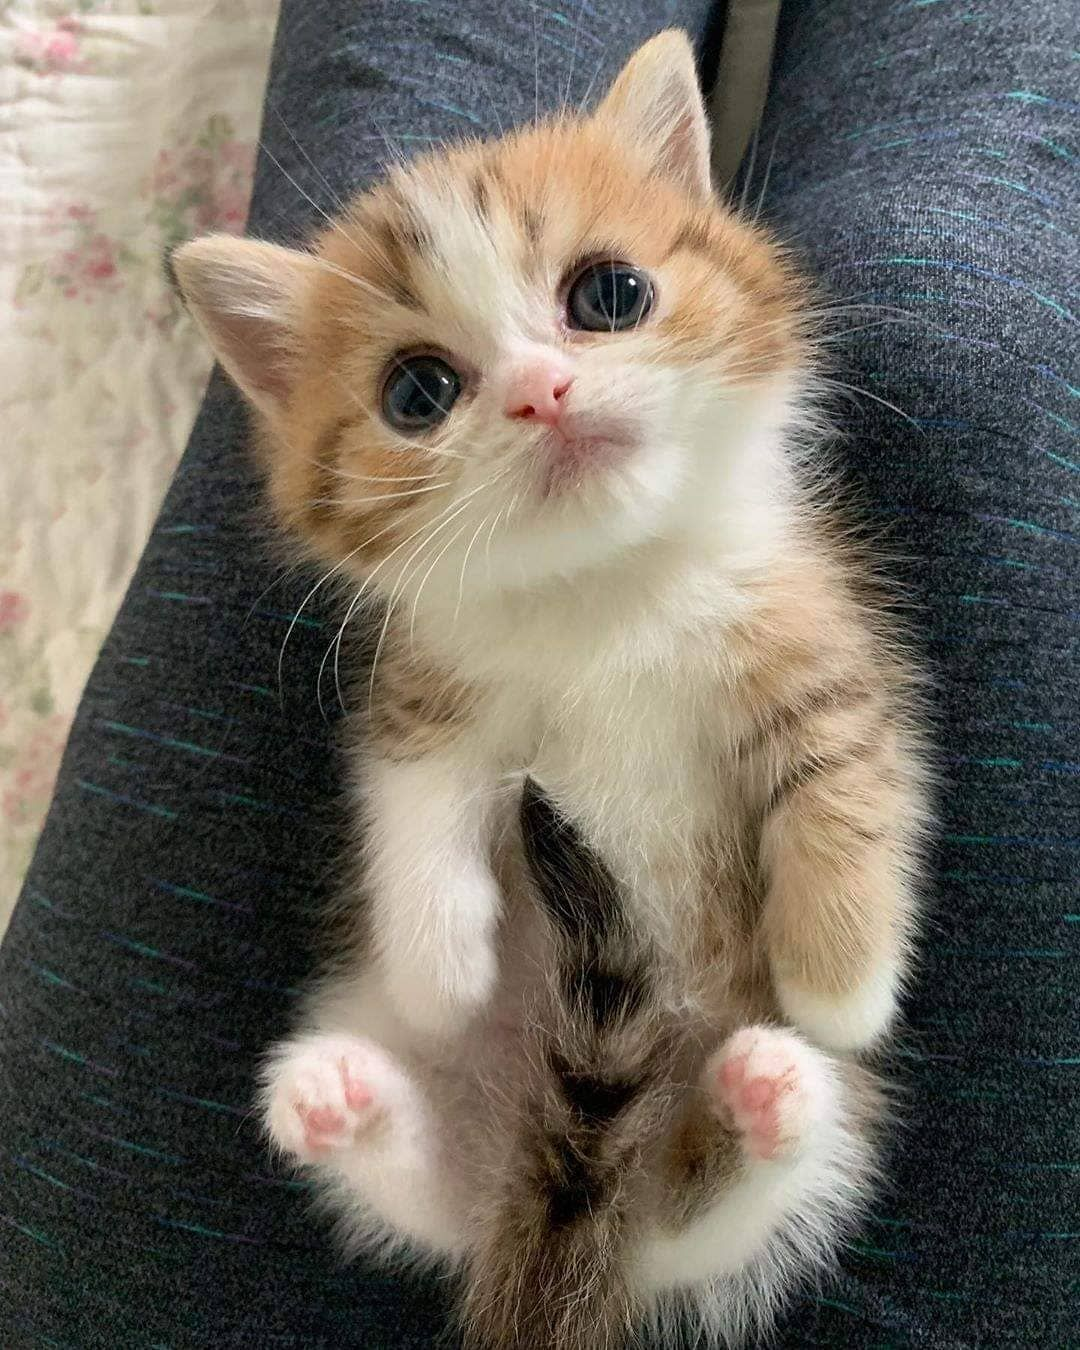 Cats Small On Instagram Cute Follow Cats Small From Unknow Thanks For You Follo In 2020 Cute Cat Gif Cute Cats And Kittens Cute Cats